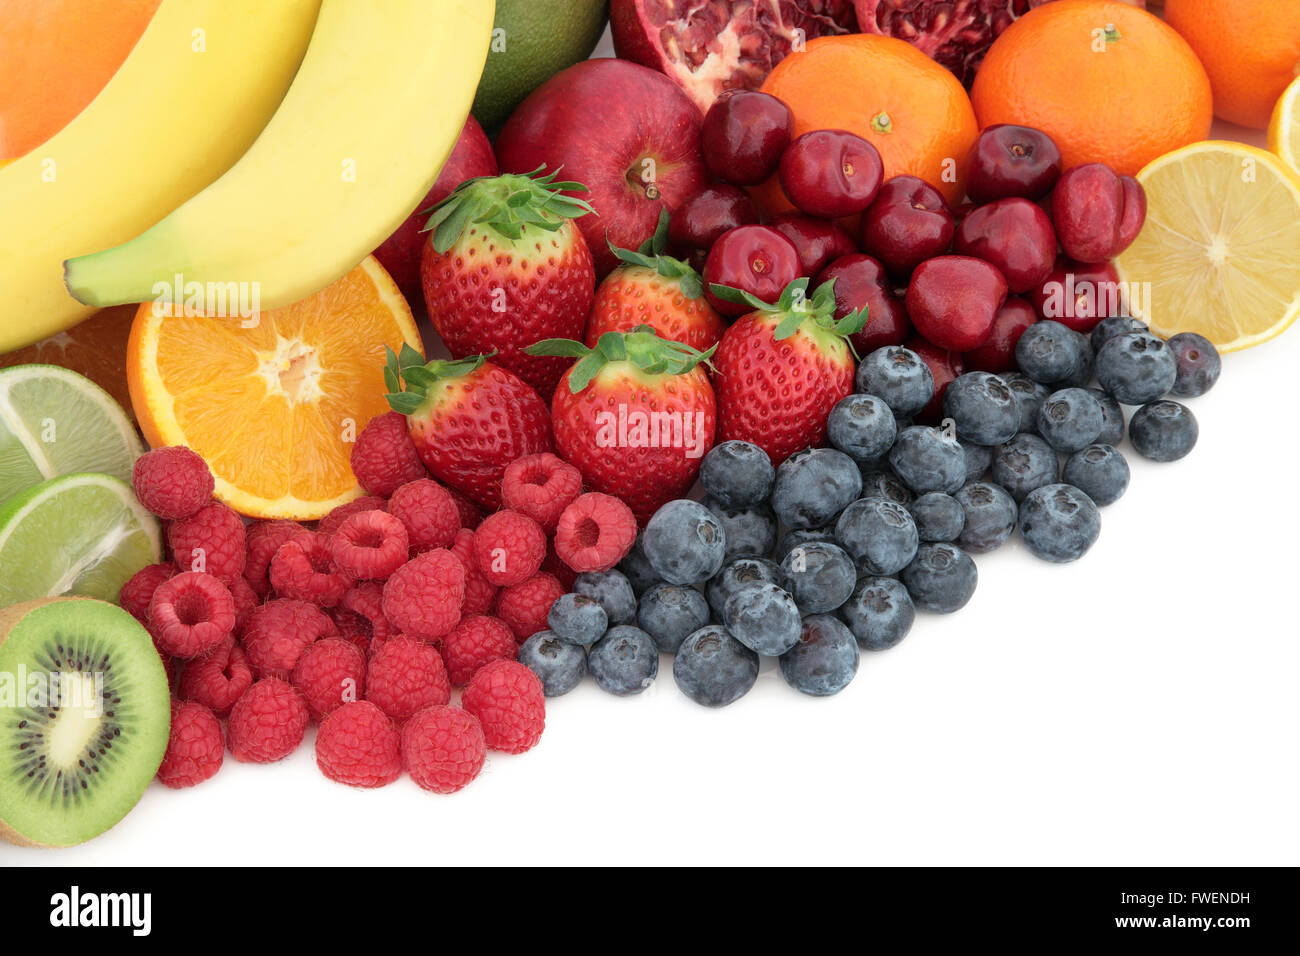 Fresh mixed fruit super food background selection with fruits high in antioxidants, vitamin c and dietary fiber Stock Photo